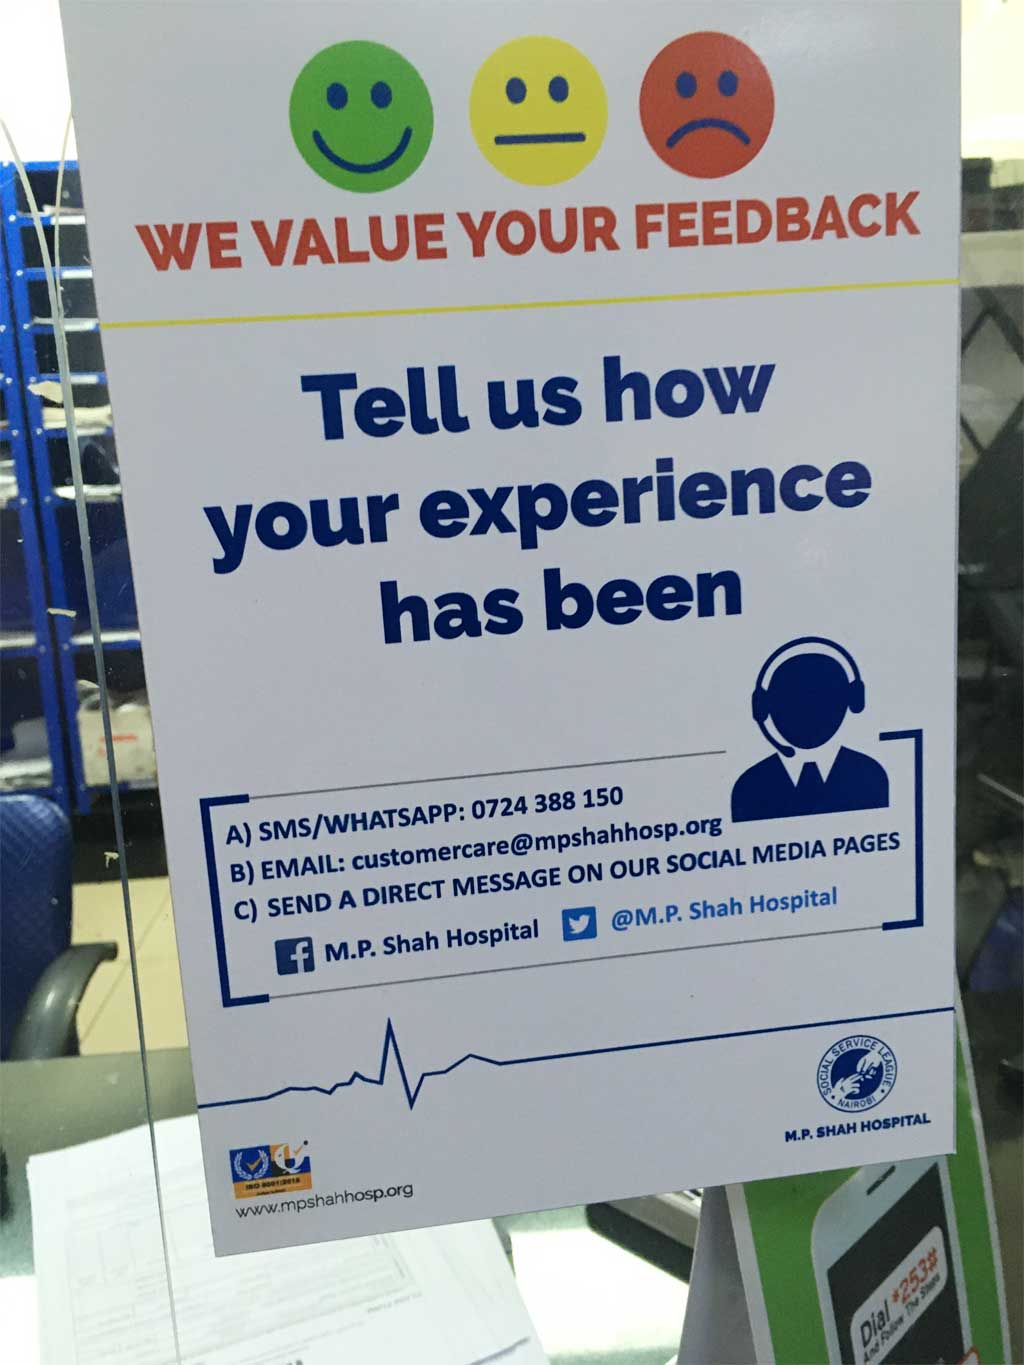 M.P. Shah Hospital - We Value Your Feedback